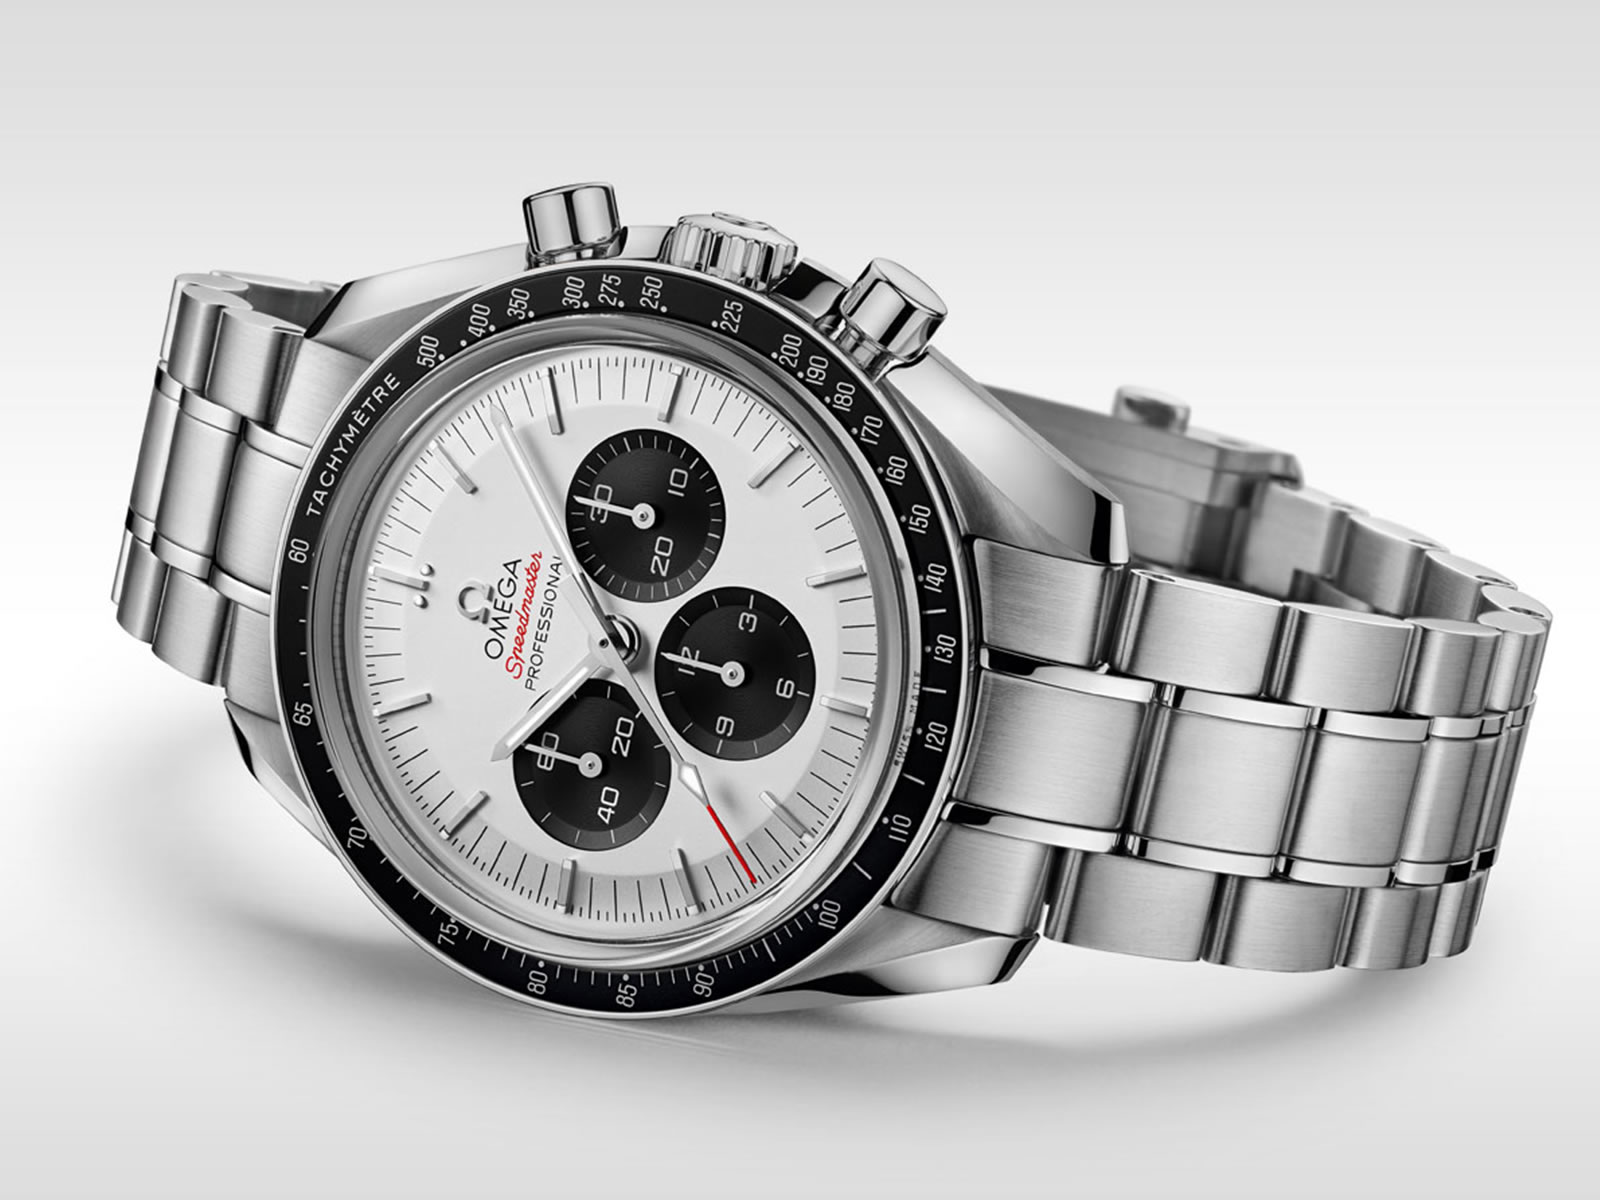 522-30-42-30-04-001-omega-olympic-games-2020-speedmaster-1-.jpg